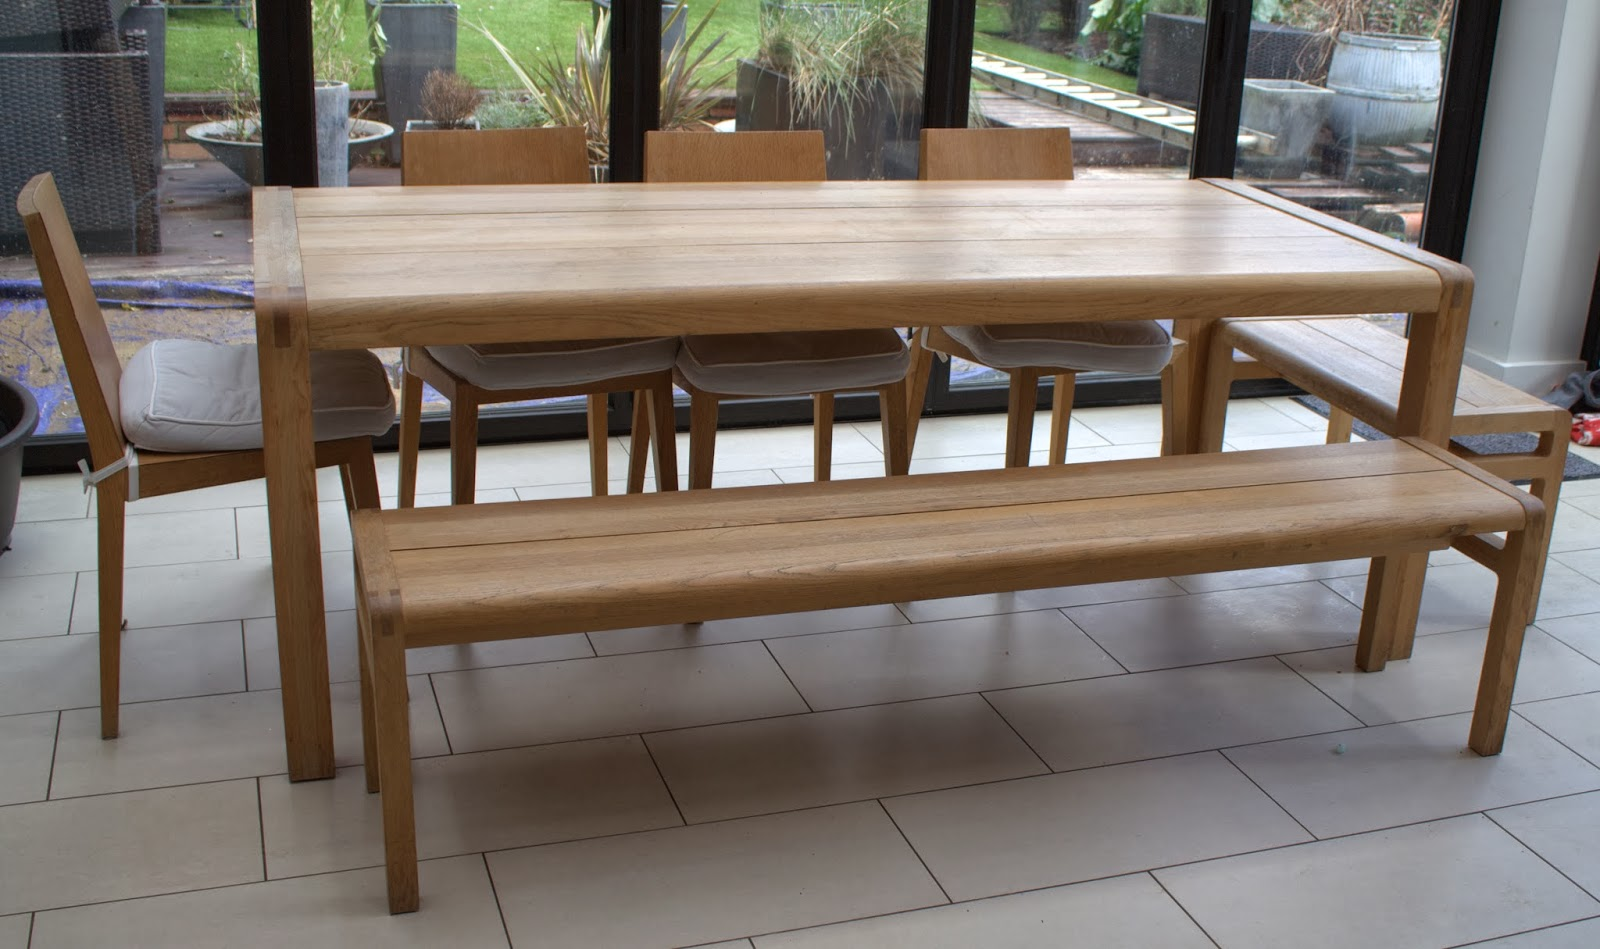 Ot fs habitat table habitat bench henriksdal chairs singletrack details about habitat radius solid oak dining set with large table 2 geotapseo Gallery